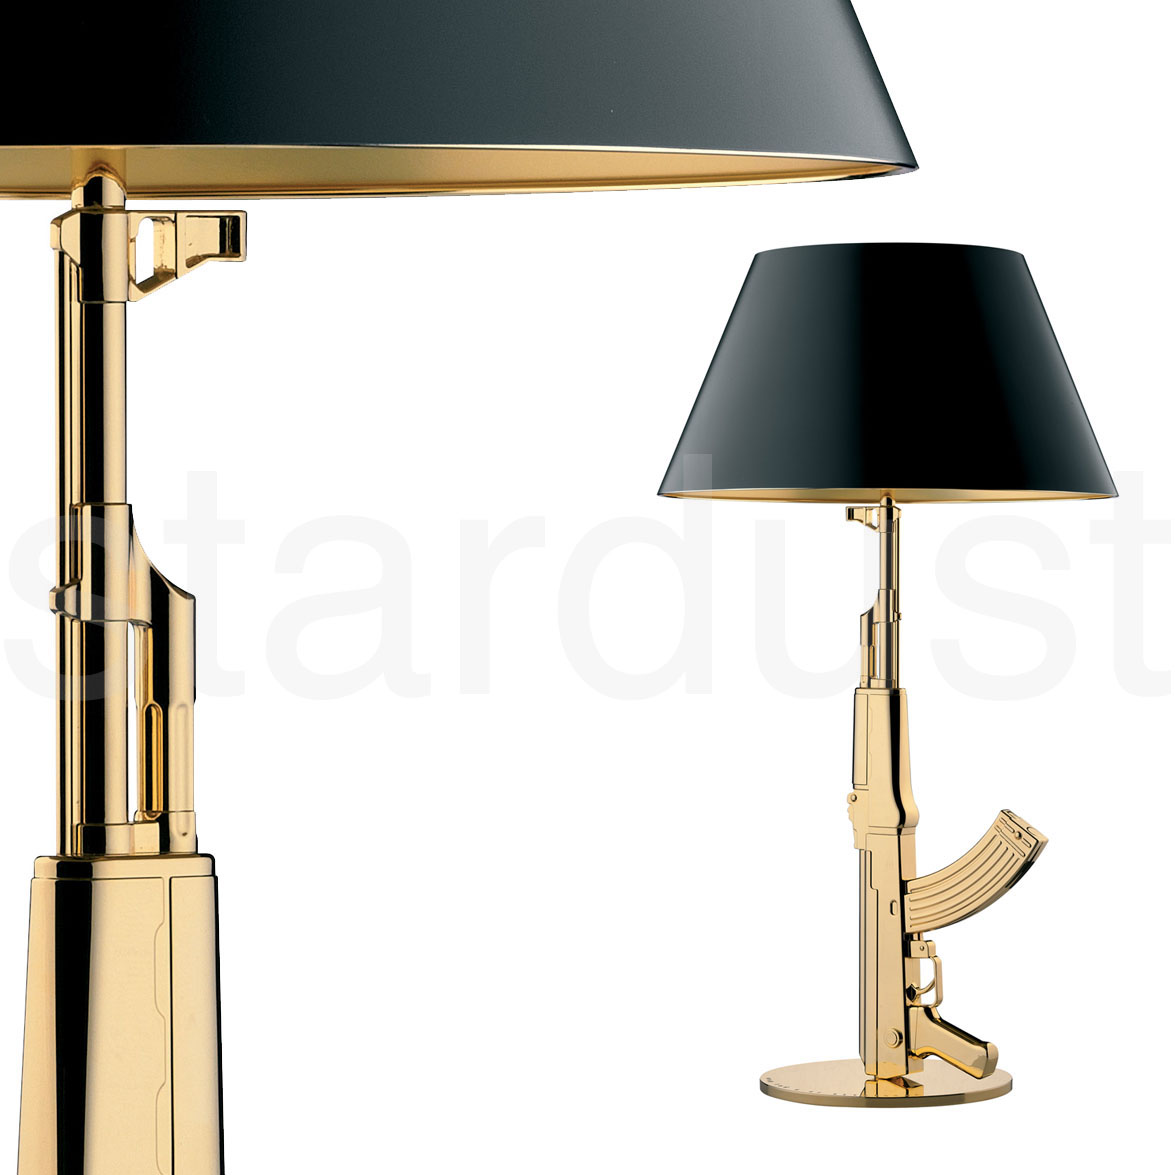 Gold Lamp With Black Shade Latest In Stock Free Delivery